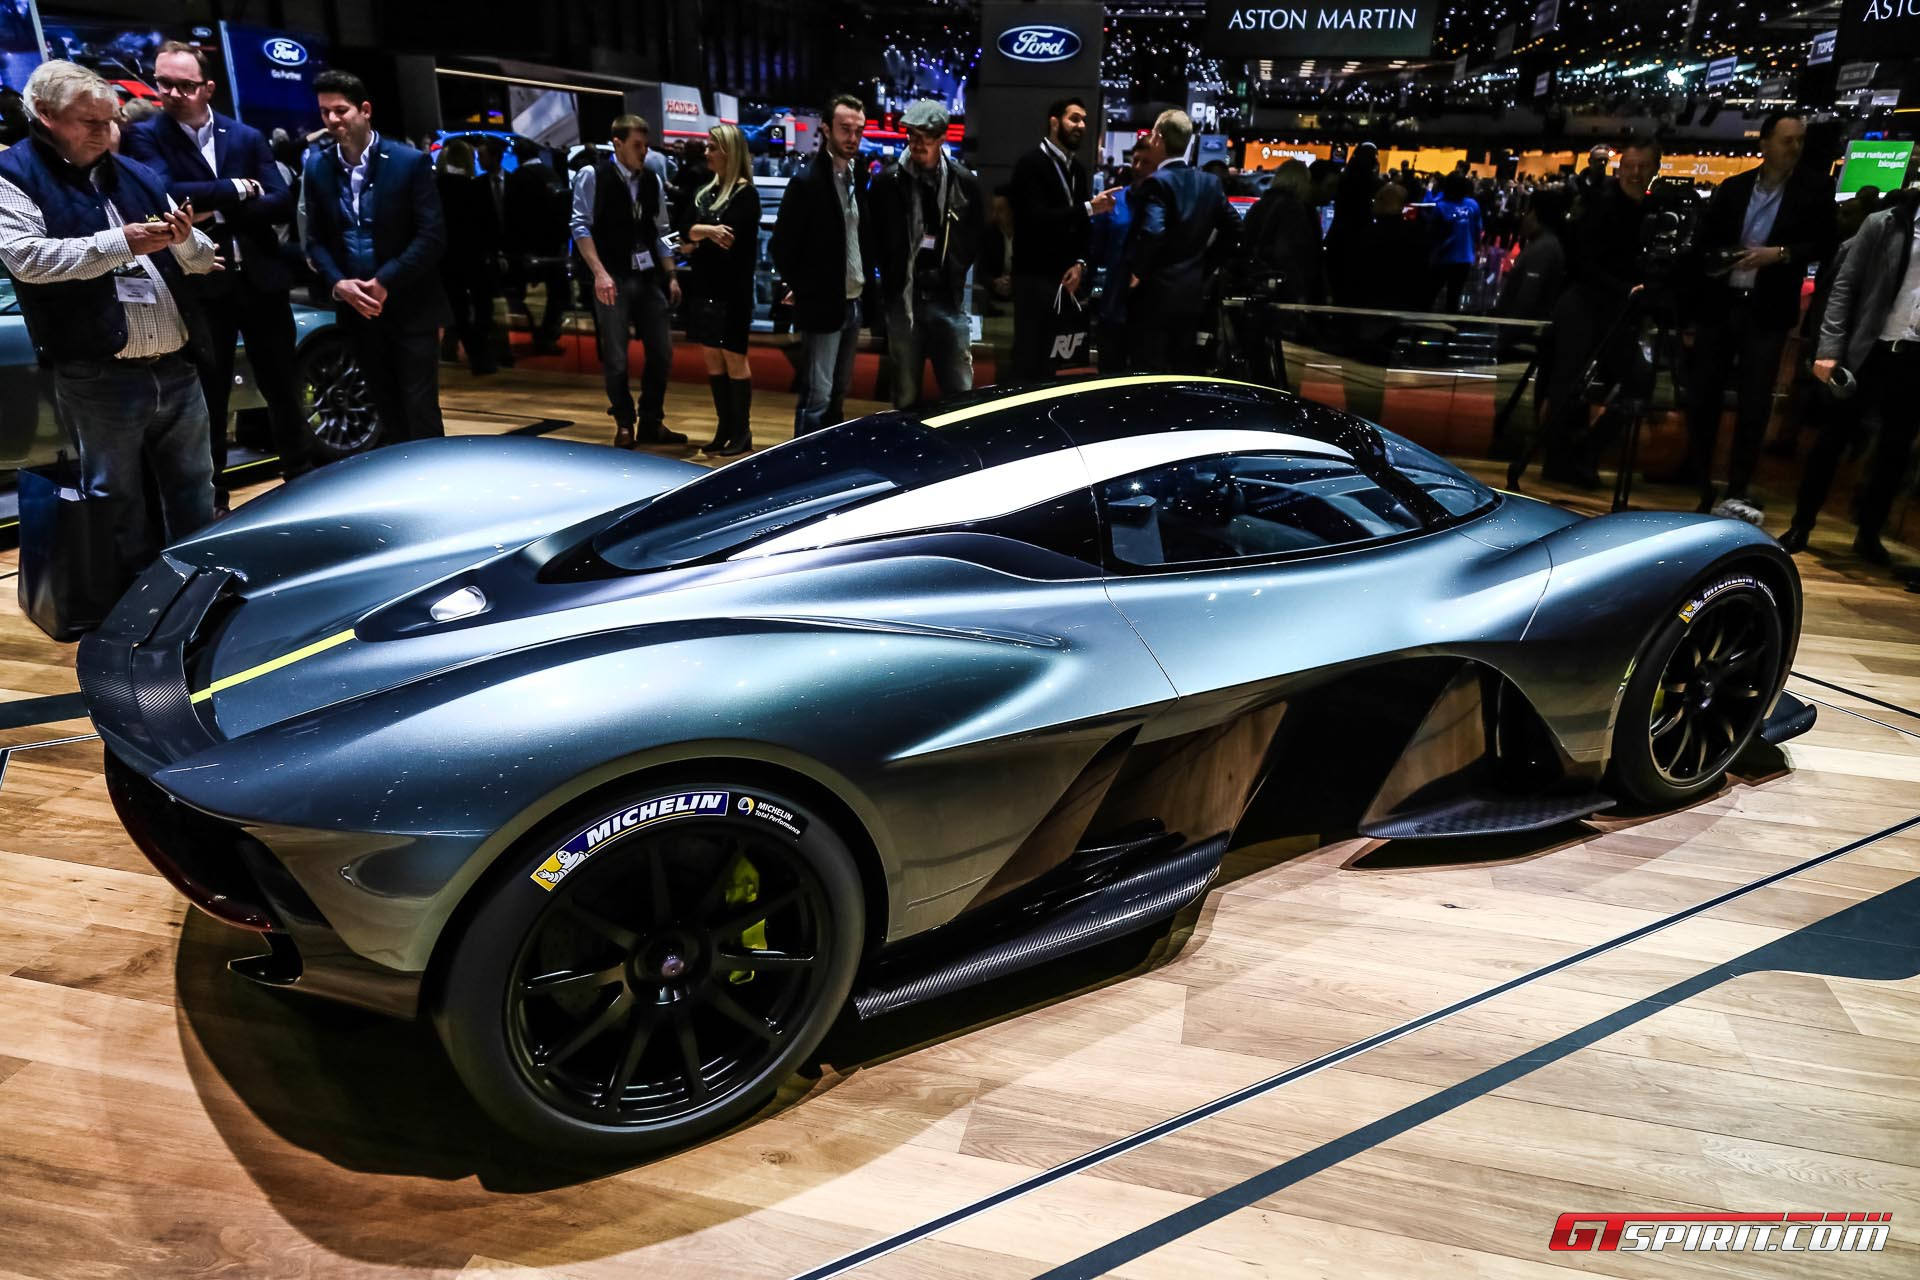 Aston Martin Valkyrie: V12 Sound Teased for the First Time